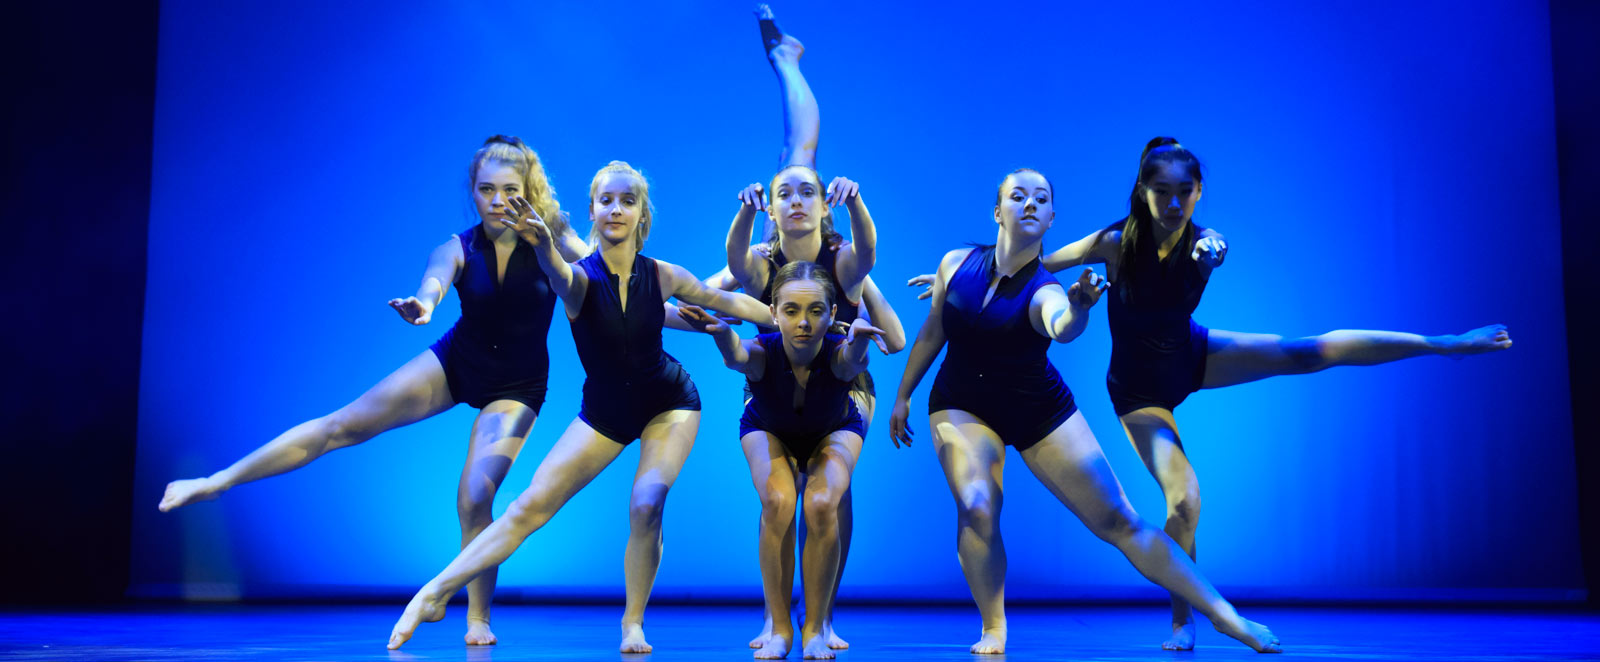 Saint-Kentigern-Senior-College-Dance-Showcase-2017.jpg